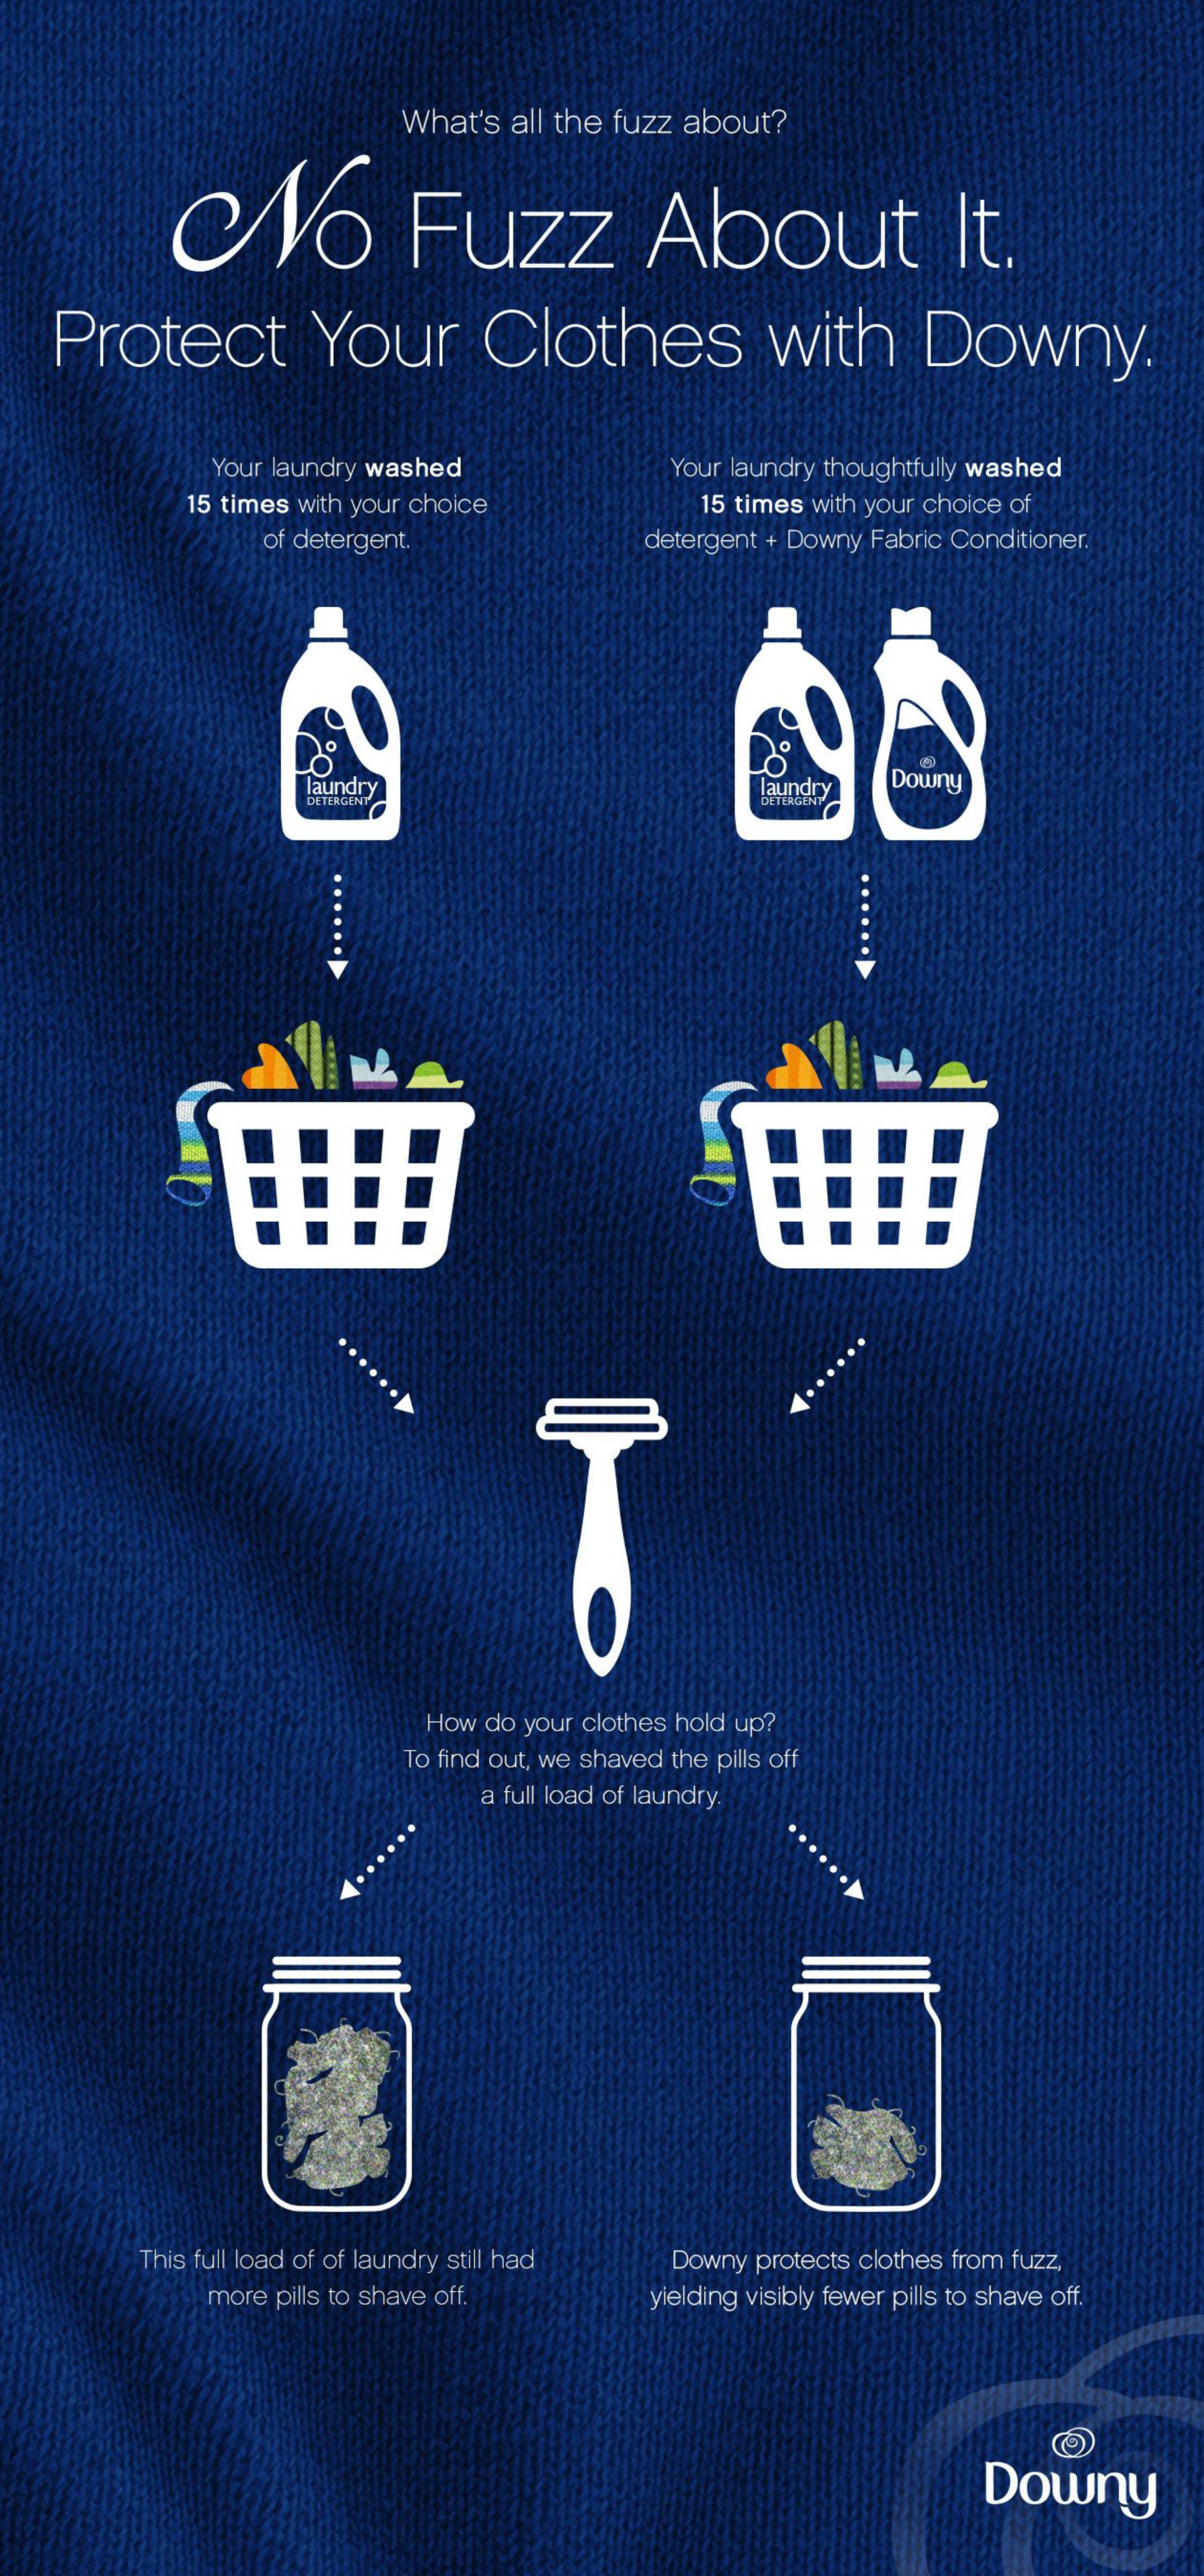 Protect your clothes and other fabrics with Downy